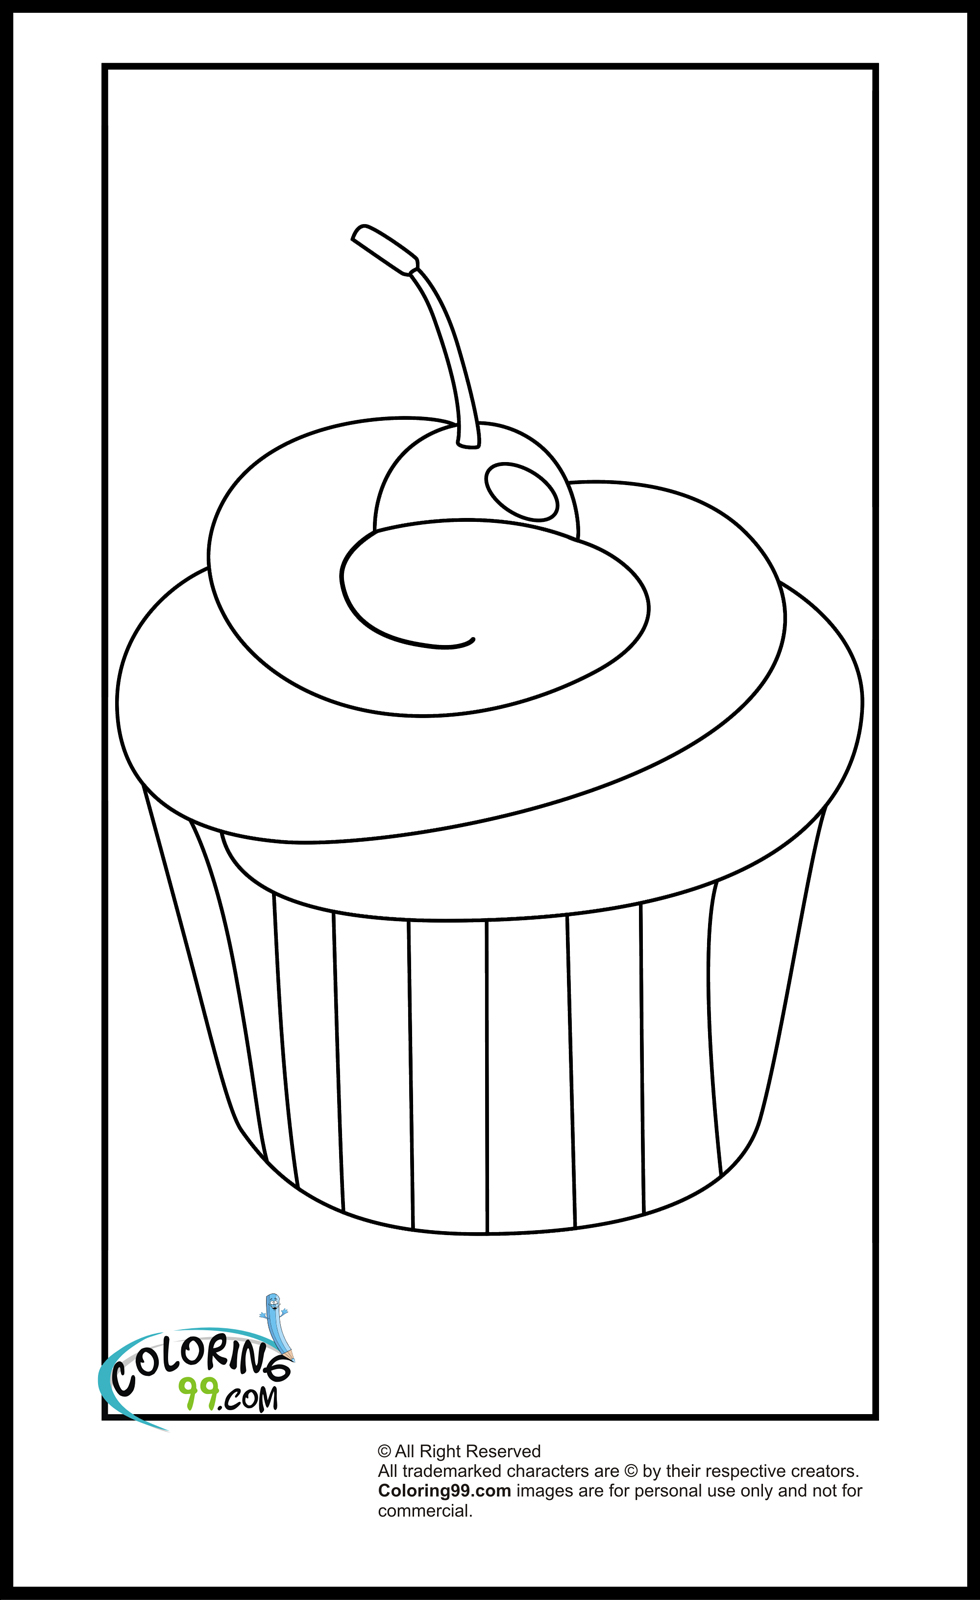 cupcakes coloring pages free printable cupcake coloring pages for kids cool2bkids pages coloring cupcakes